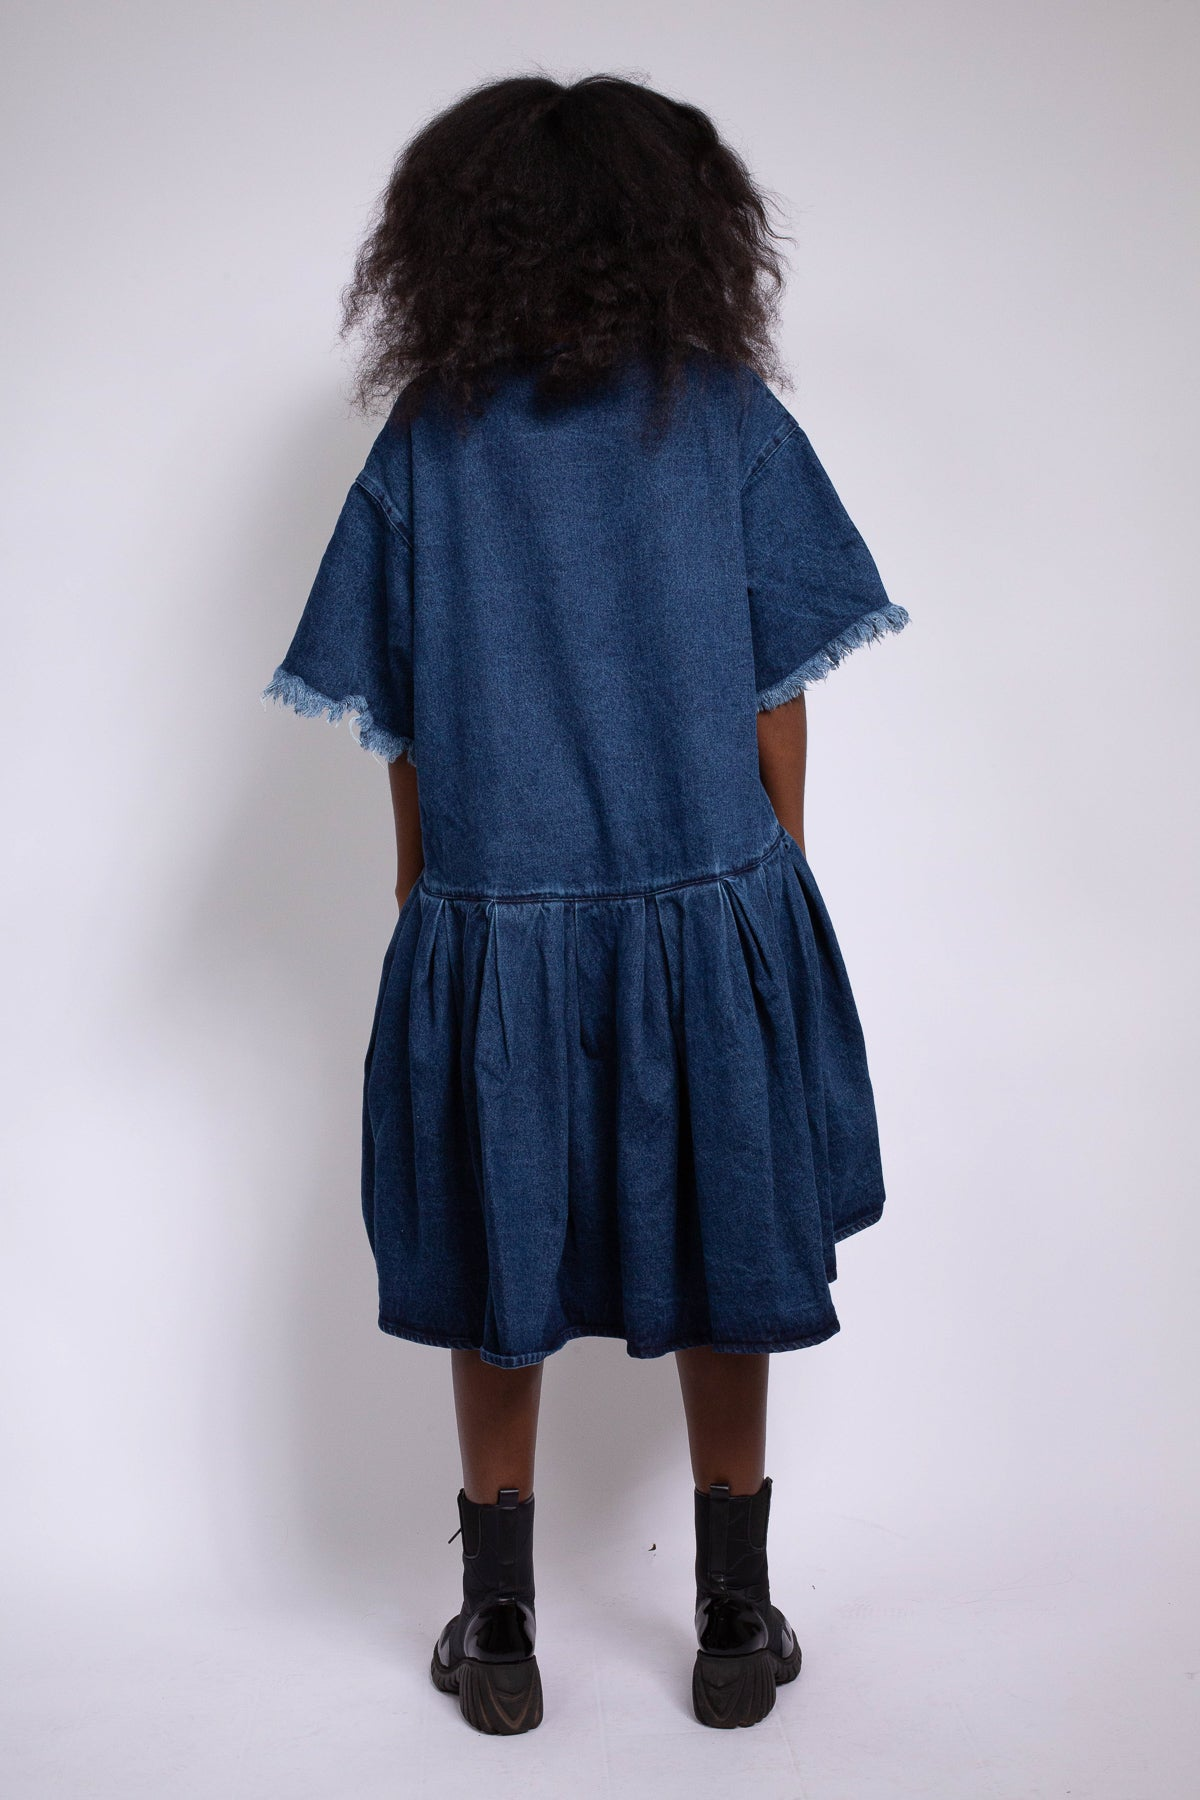 GATHERED T-SHIRT DRESS IN BLUE DENIM